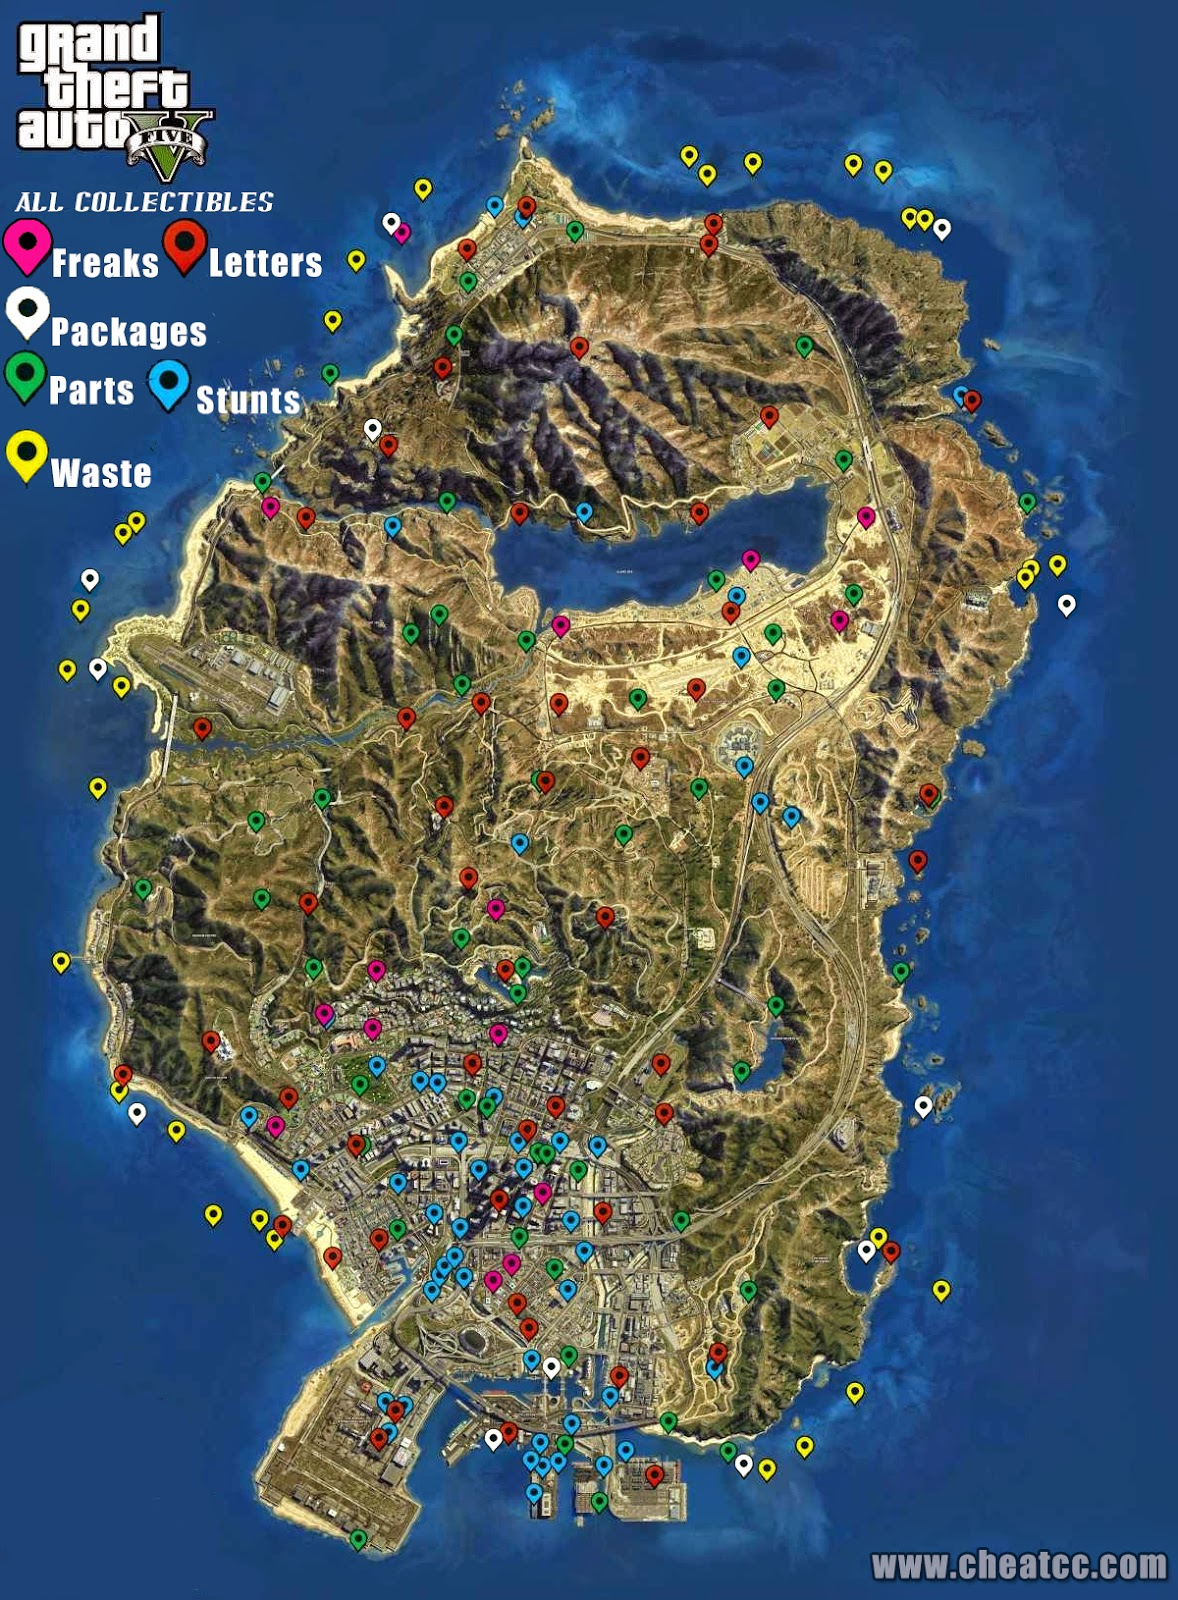 map 1 this map contains all locations for all collectibles gta fivev secret car - Gta V Secret Cars